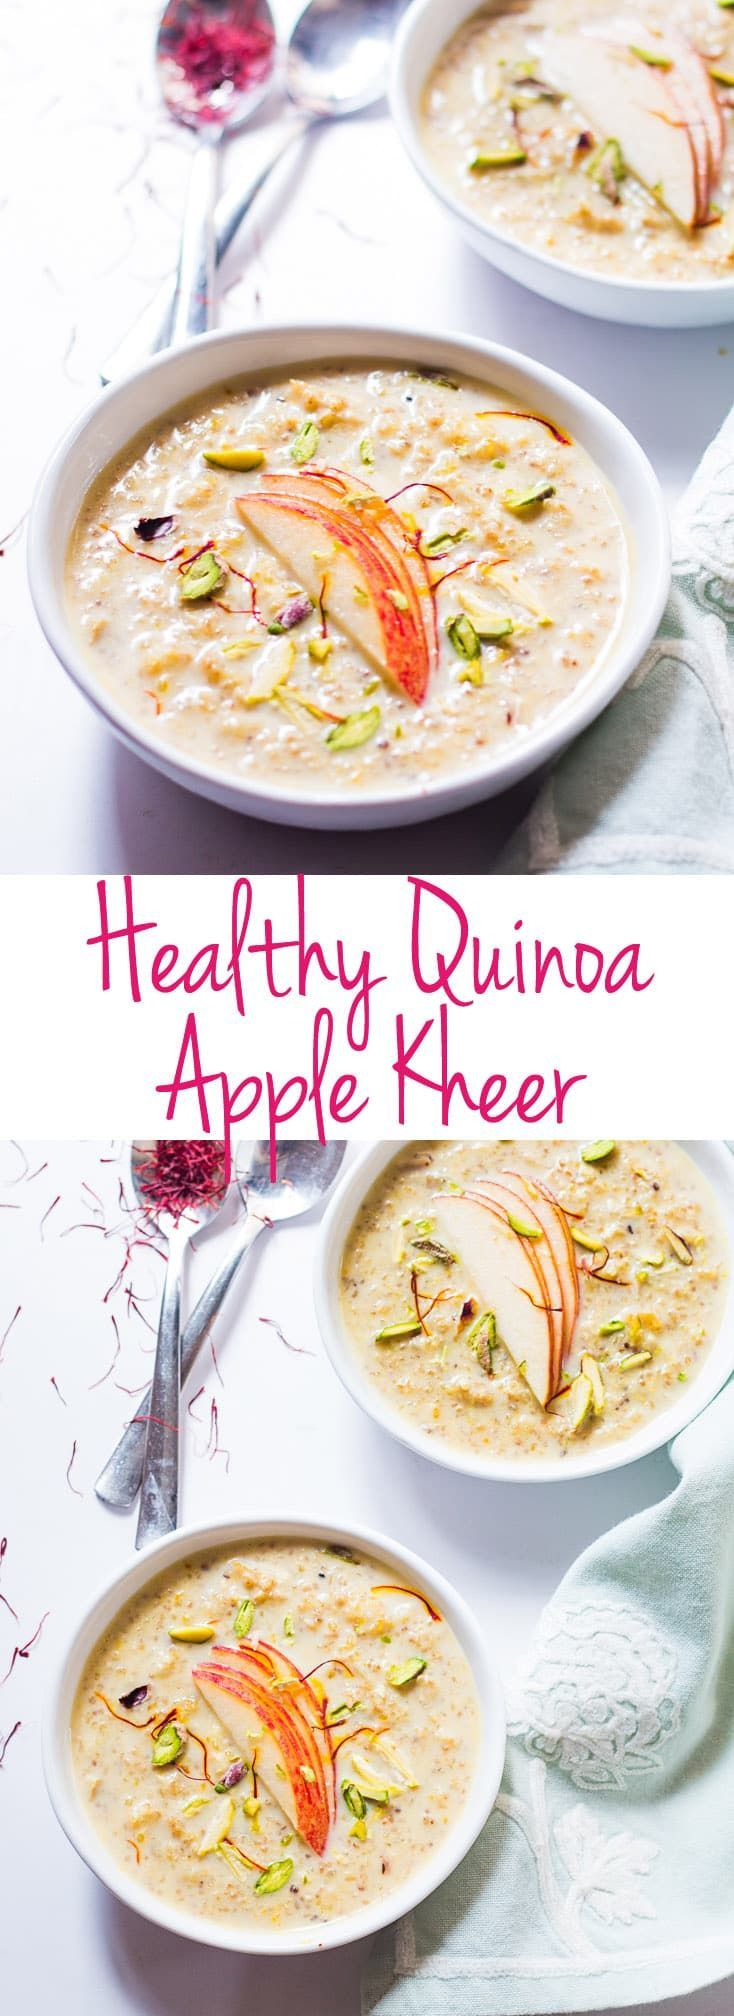 Healthy quinoa apple kheer is a low calorie Indian festival dessert, full of fiber and nutrition. It's like pudding, but has saffron, pistachios and cardamom.